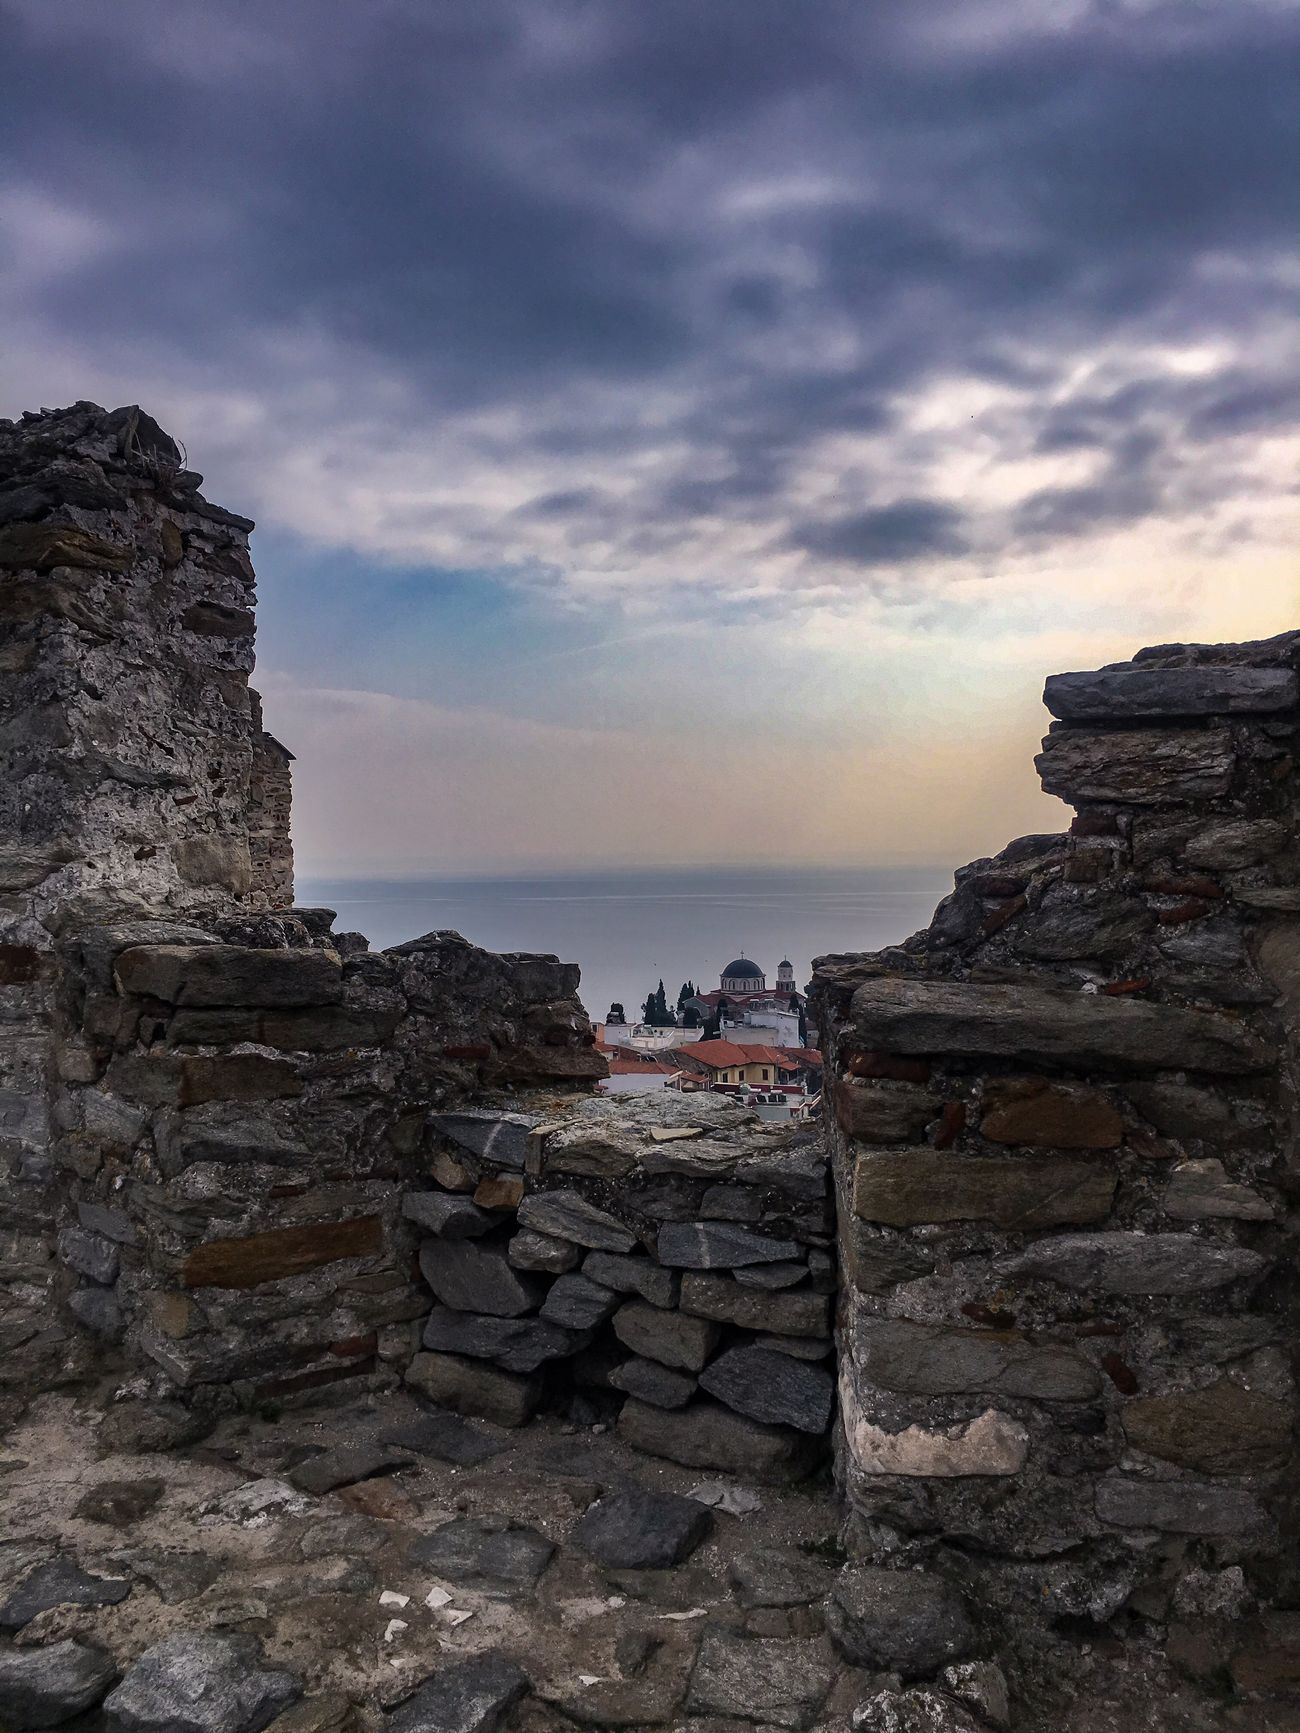 Greece Castle View  Castle Ruin Sky Architecture History Built Structure Horizon Over Water No People Travel Destinations Outdoors Building Exterior Ancient Civilization Beauty In Nature Travel Photography Ancient Fortress Scenics